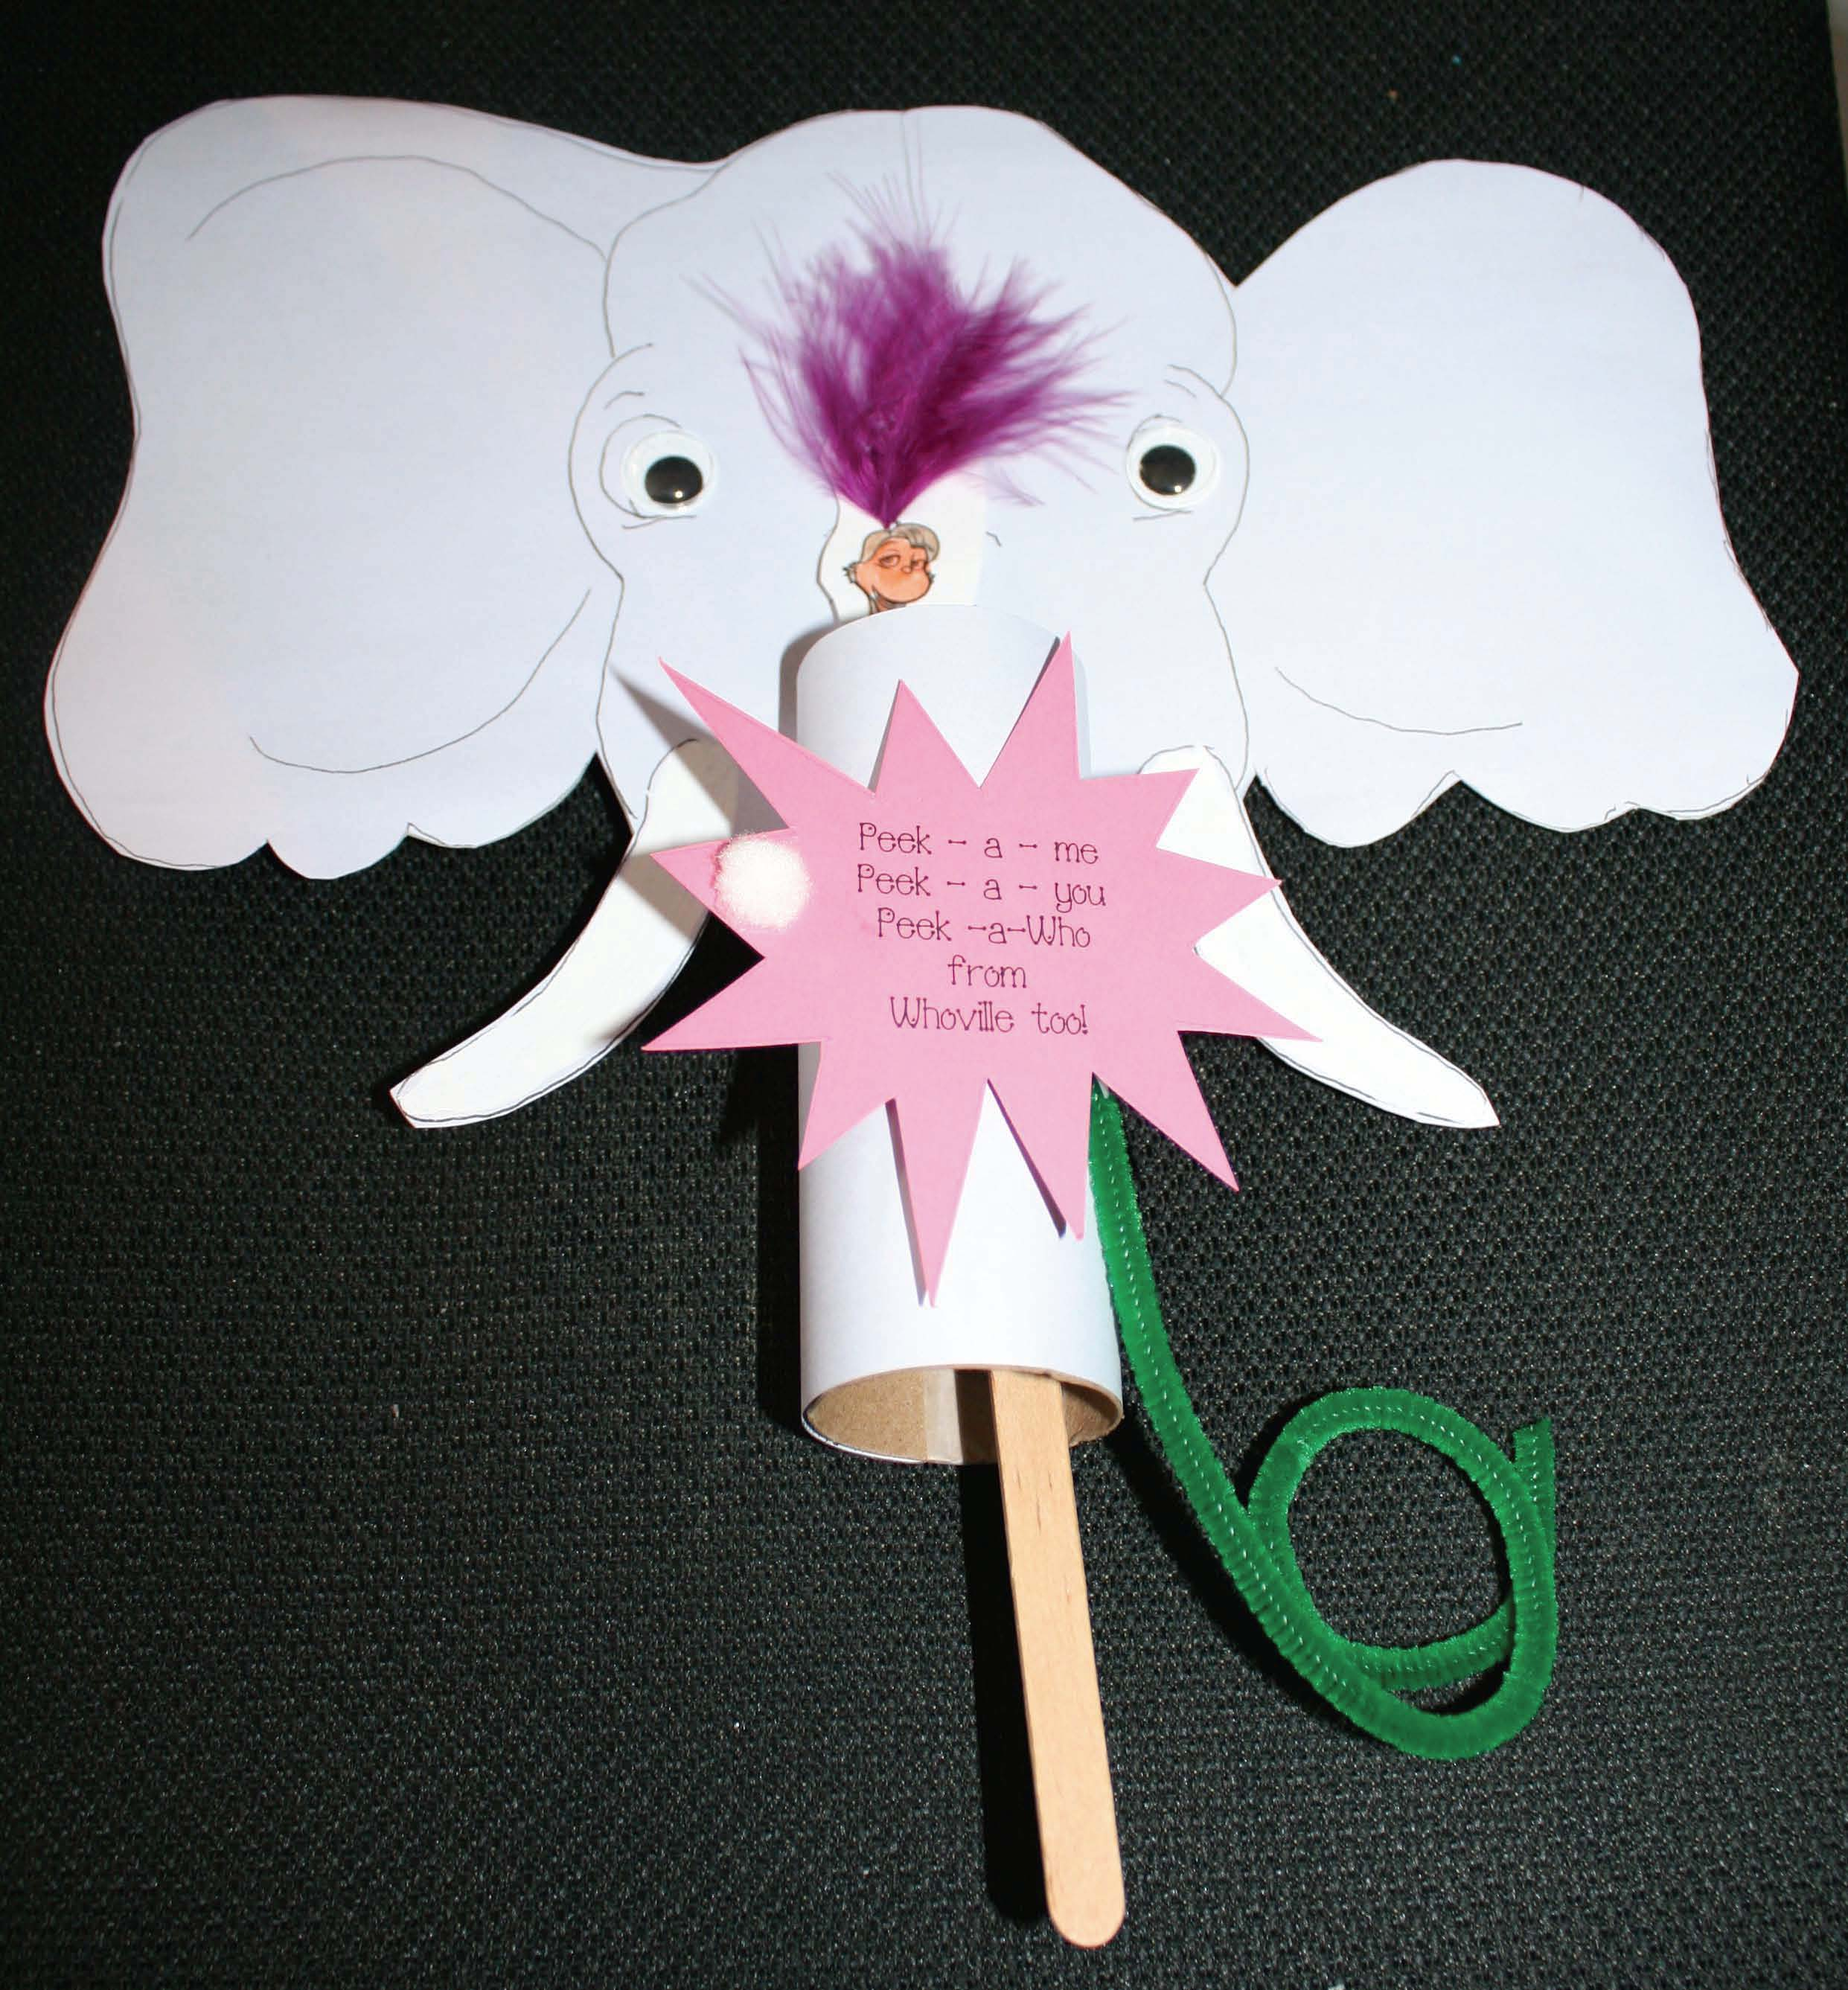 horton the elephant activities, horton writing prompts, color games, elephant crafts, elephant activities, color activities, color games, color crafts, color emergent reader, elephant games, elephant centers, 5 senses activities, emergent readers